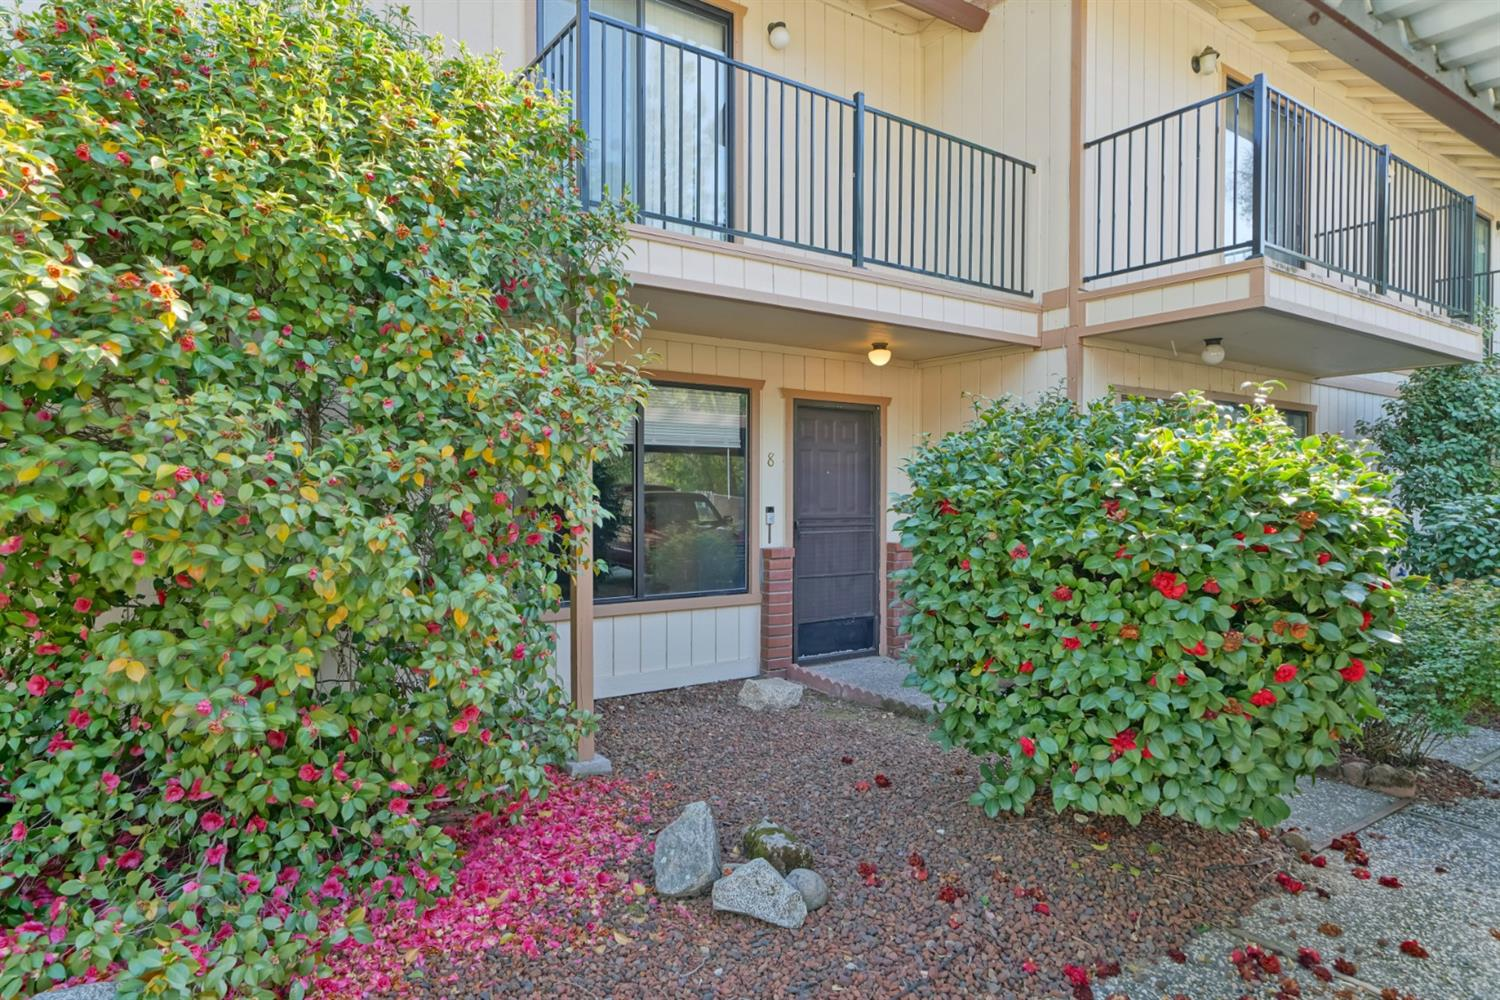 Quaint 2 bedroom, 1.5 bath condo in Lakeview Village, perfectly located in close proximity to shopping, restaurants & Hwy 50 access. Cozy family room with wood burning stove, updated tile flooring in living areas, & half bath downstairs. Upstairs features 2 spacious bedrooms, balcony off master bedroom, full bathroom & laundry area. Low maintenance private yard. Condo is assigned one covered parking space & one uncovered parking space.